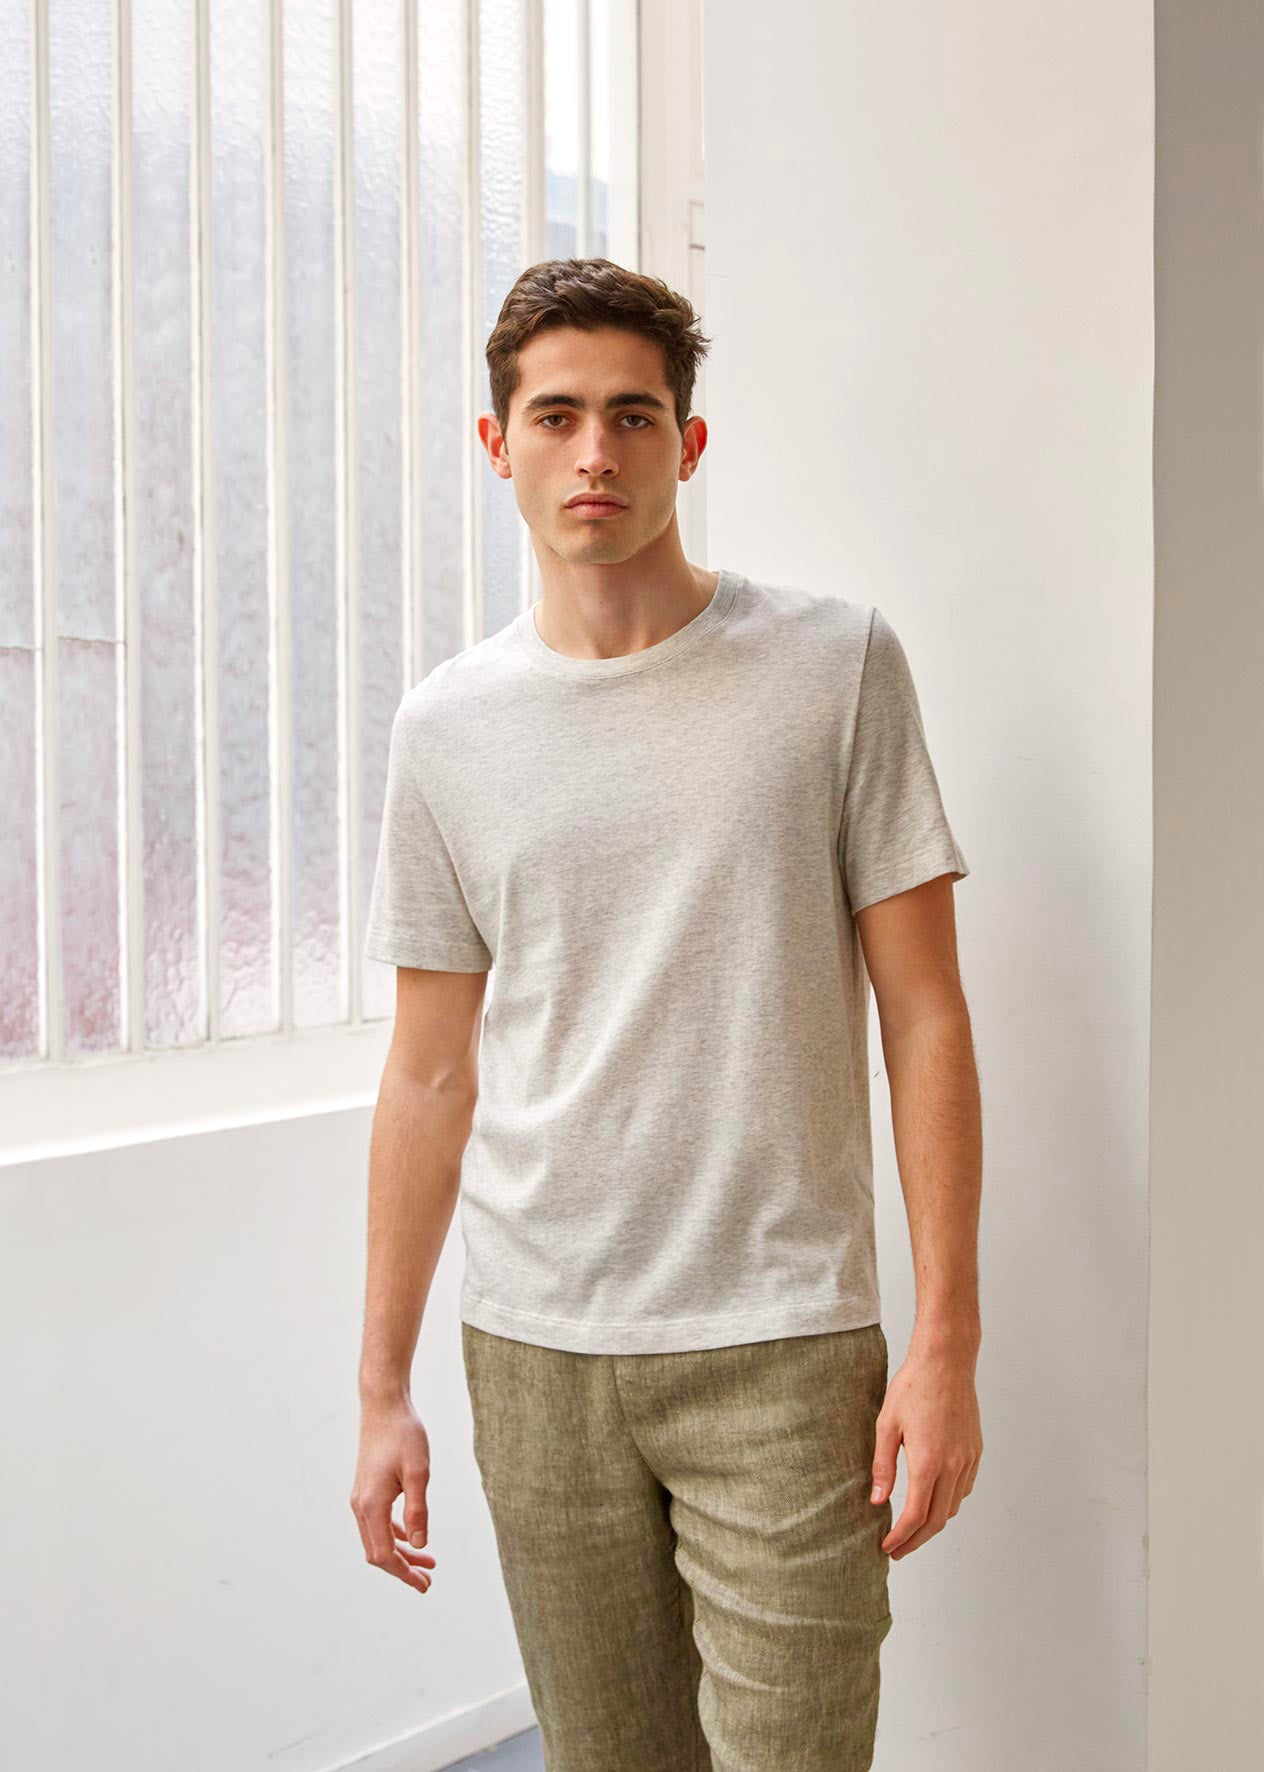 Essential t-shirt - Organic cotton jersey - Heathered grey - De Bonne Facture